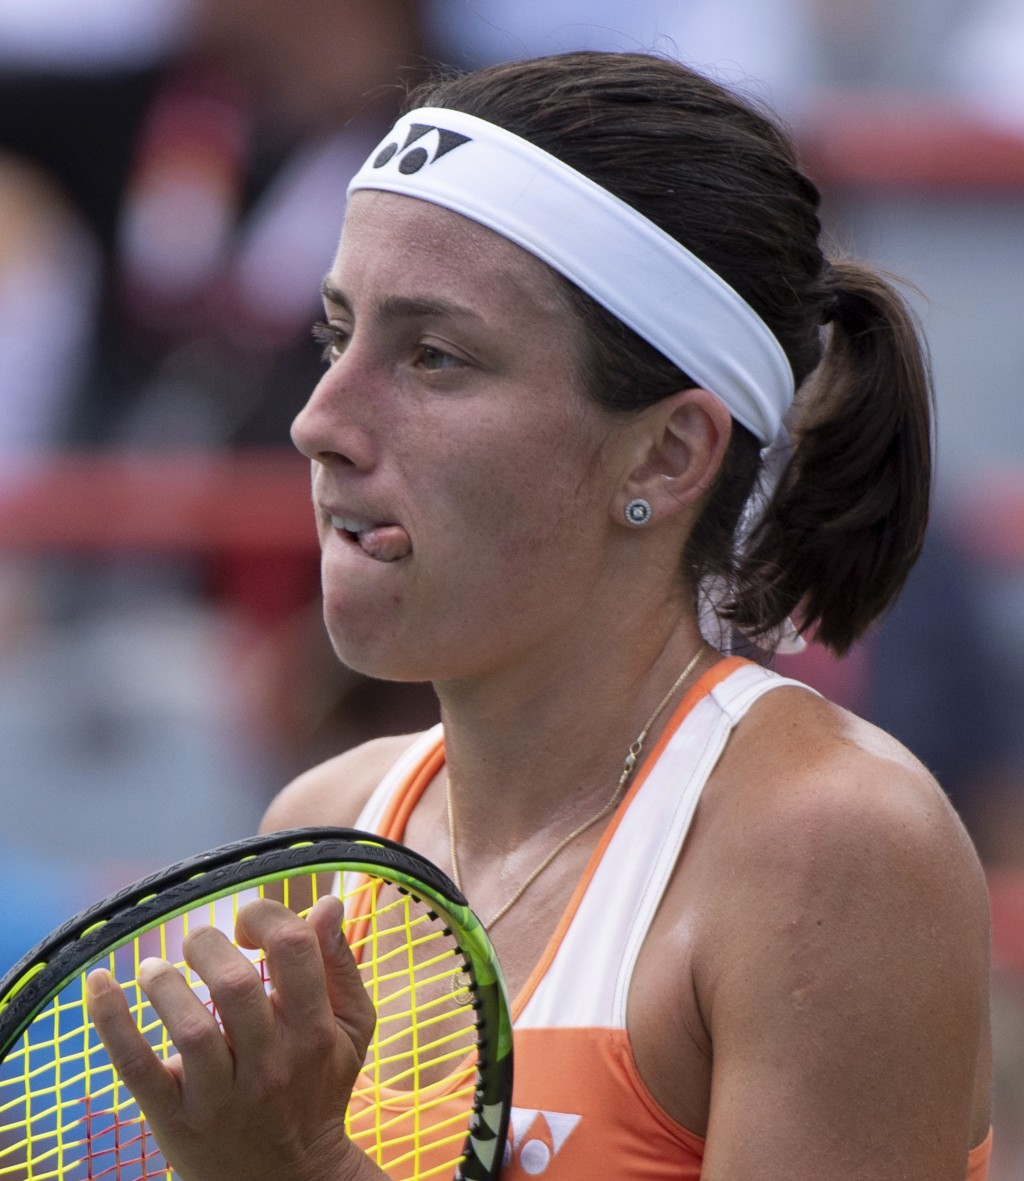 Anastasija Sevastova of Latvia reacts as she faces Sloane Stephens of the United States during quarterfinals play at the Rogers Cup tennis tournament